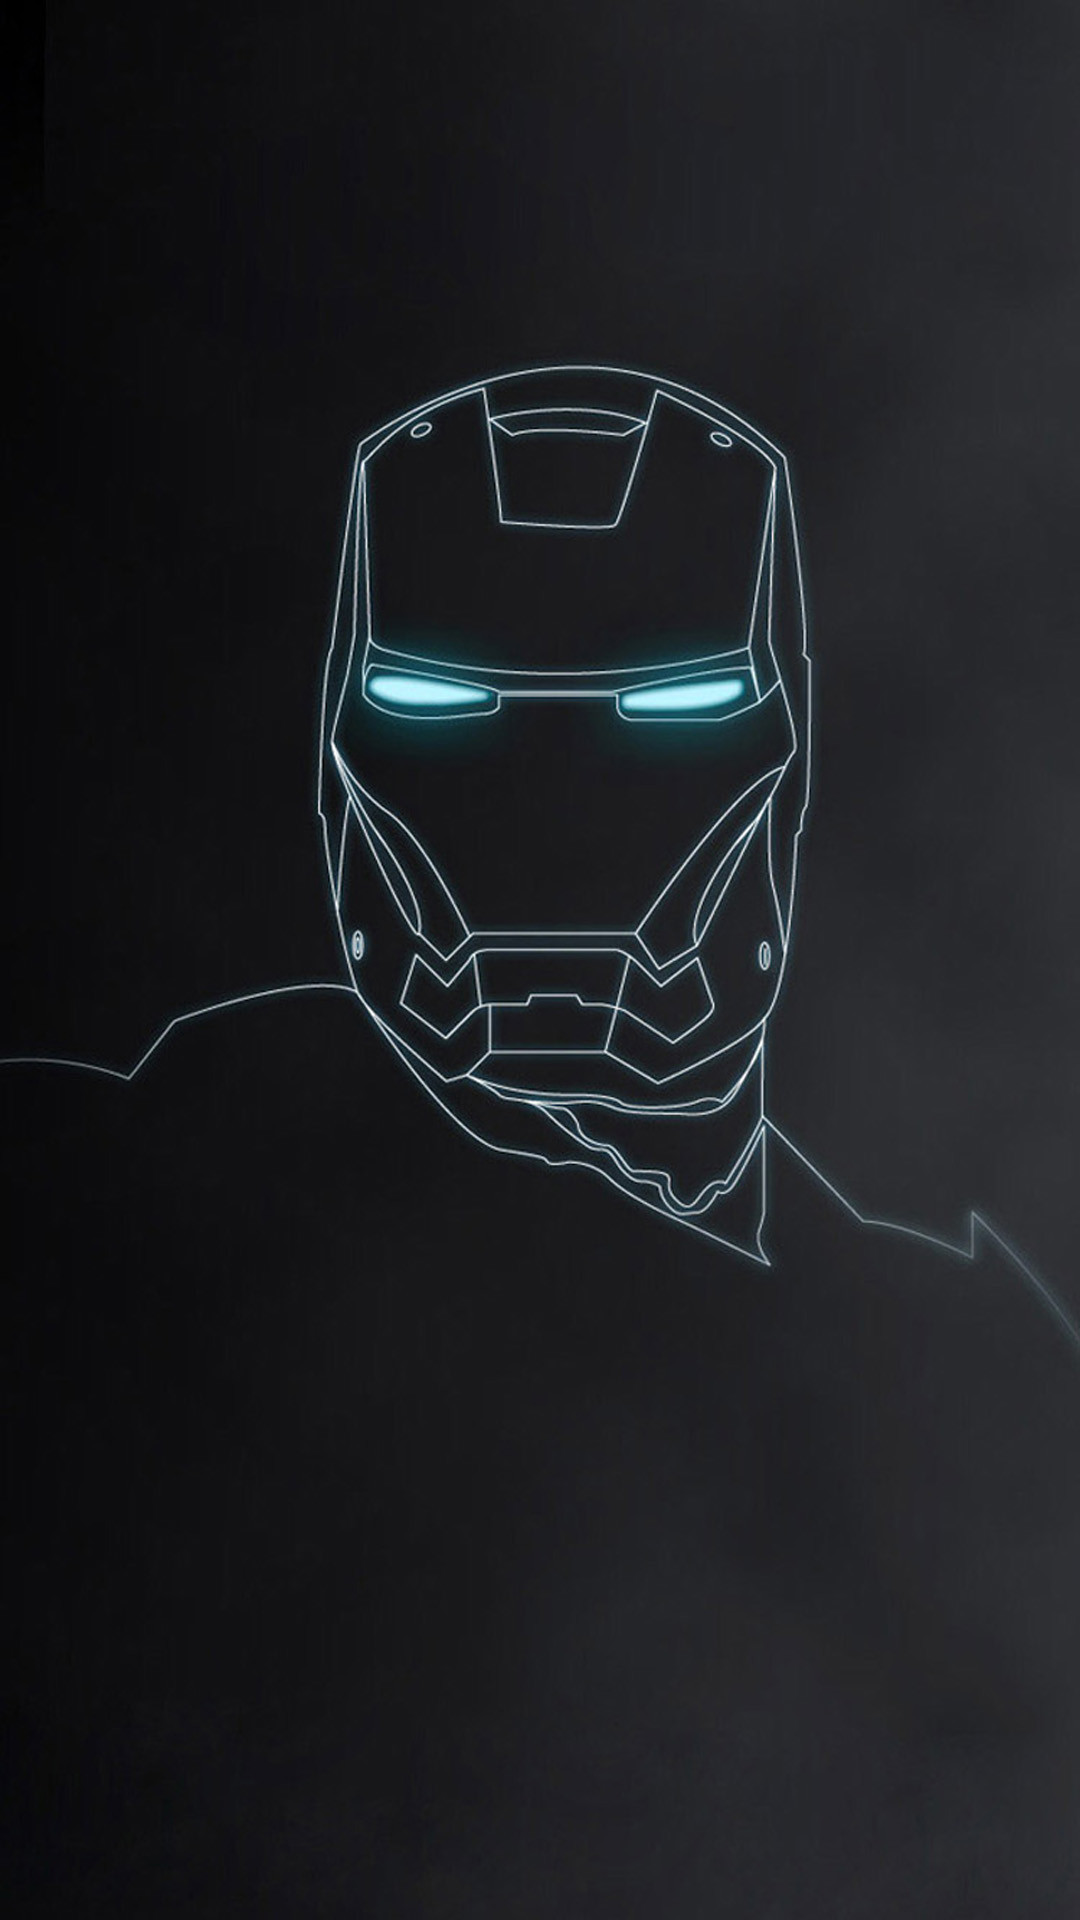 Iron Man 3 Movie iPhone 6 Wallpaper and iPhone 6 Plus Wallpapers